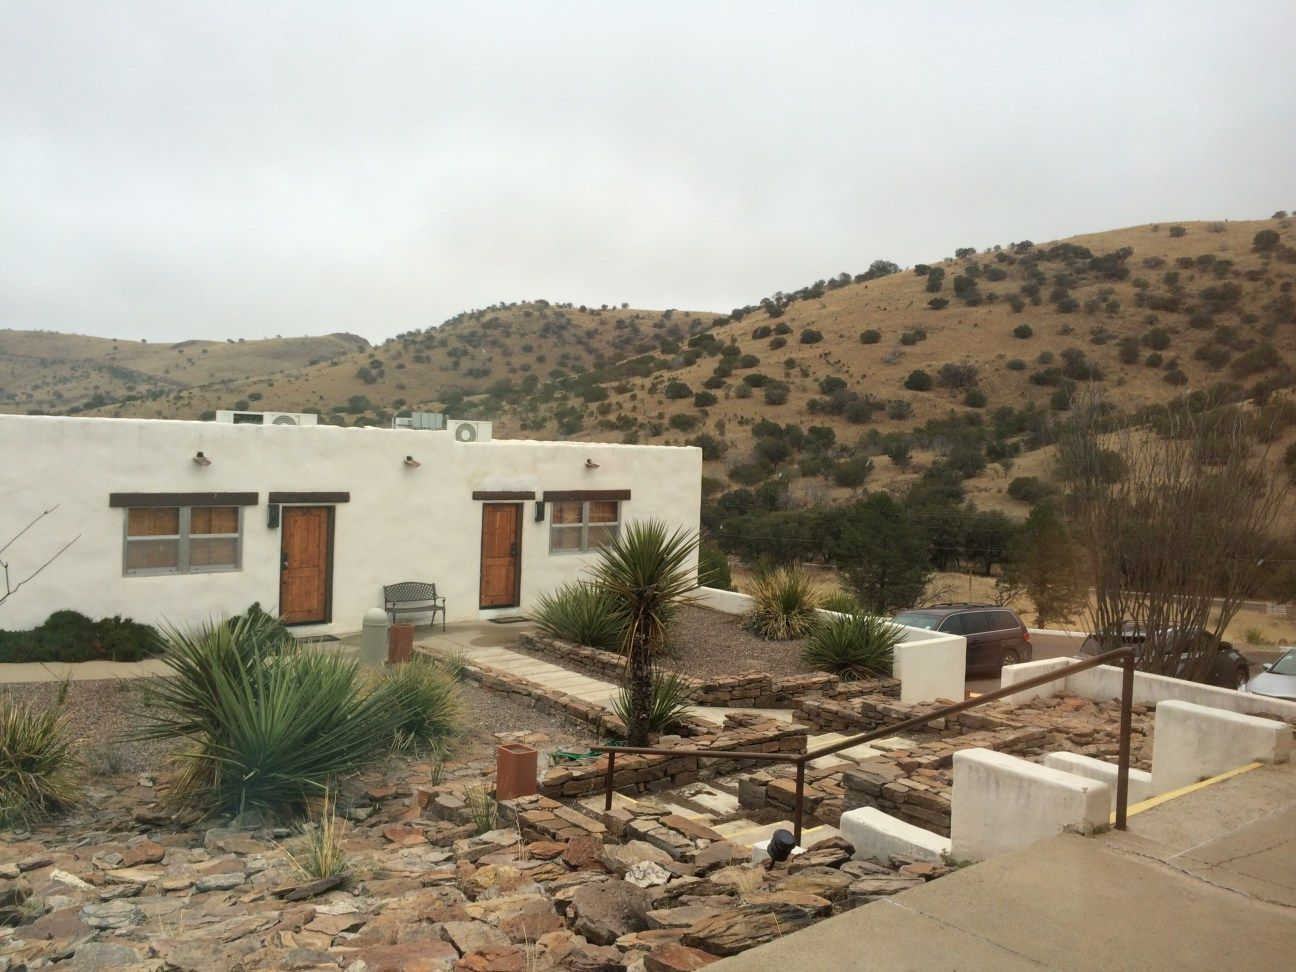 The Indian Lodge is located in the Davis Mountains State Park. CCC, Fort Davis, Texas, southwestern hotel,